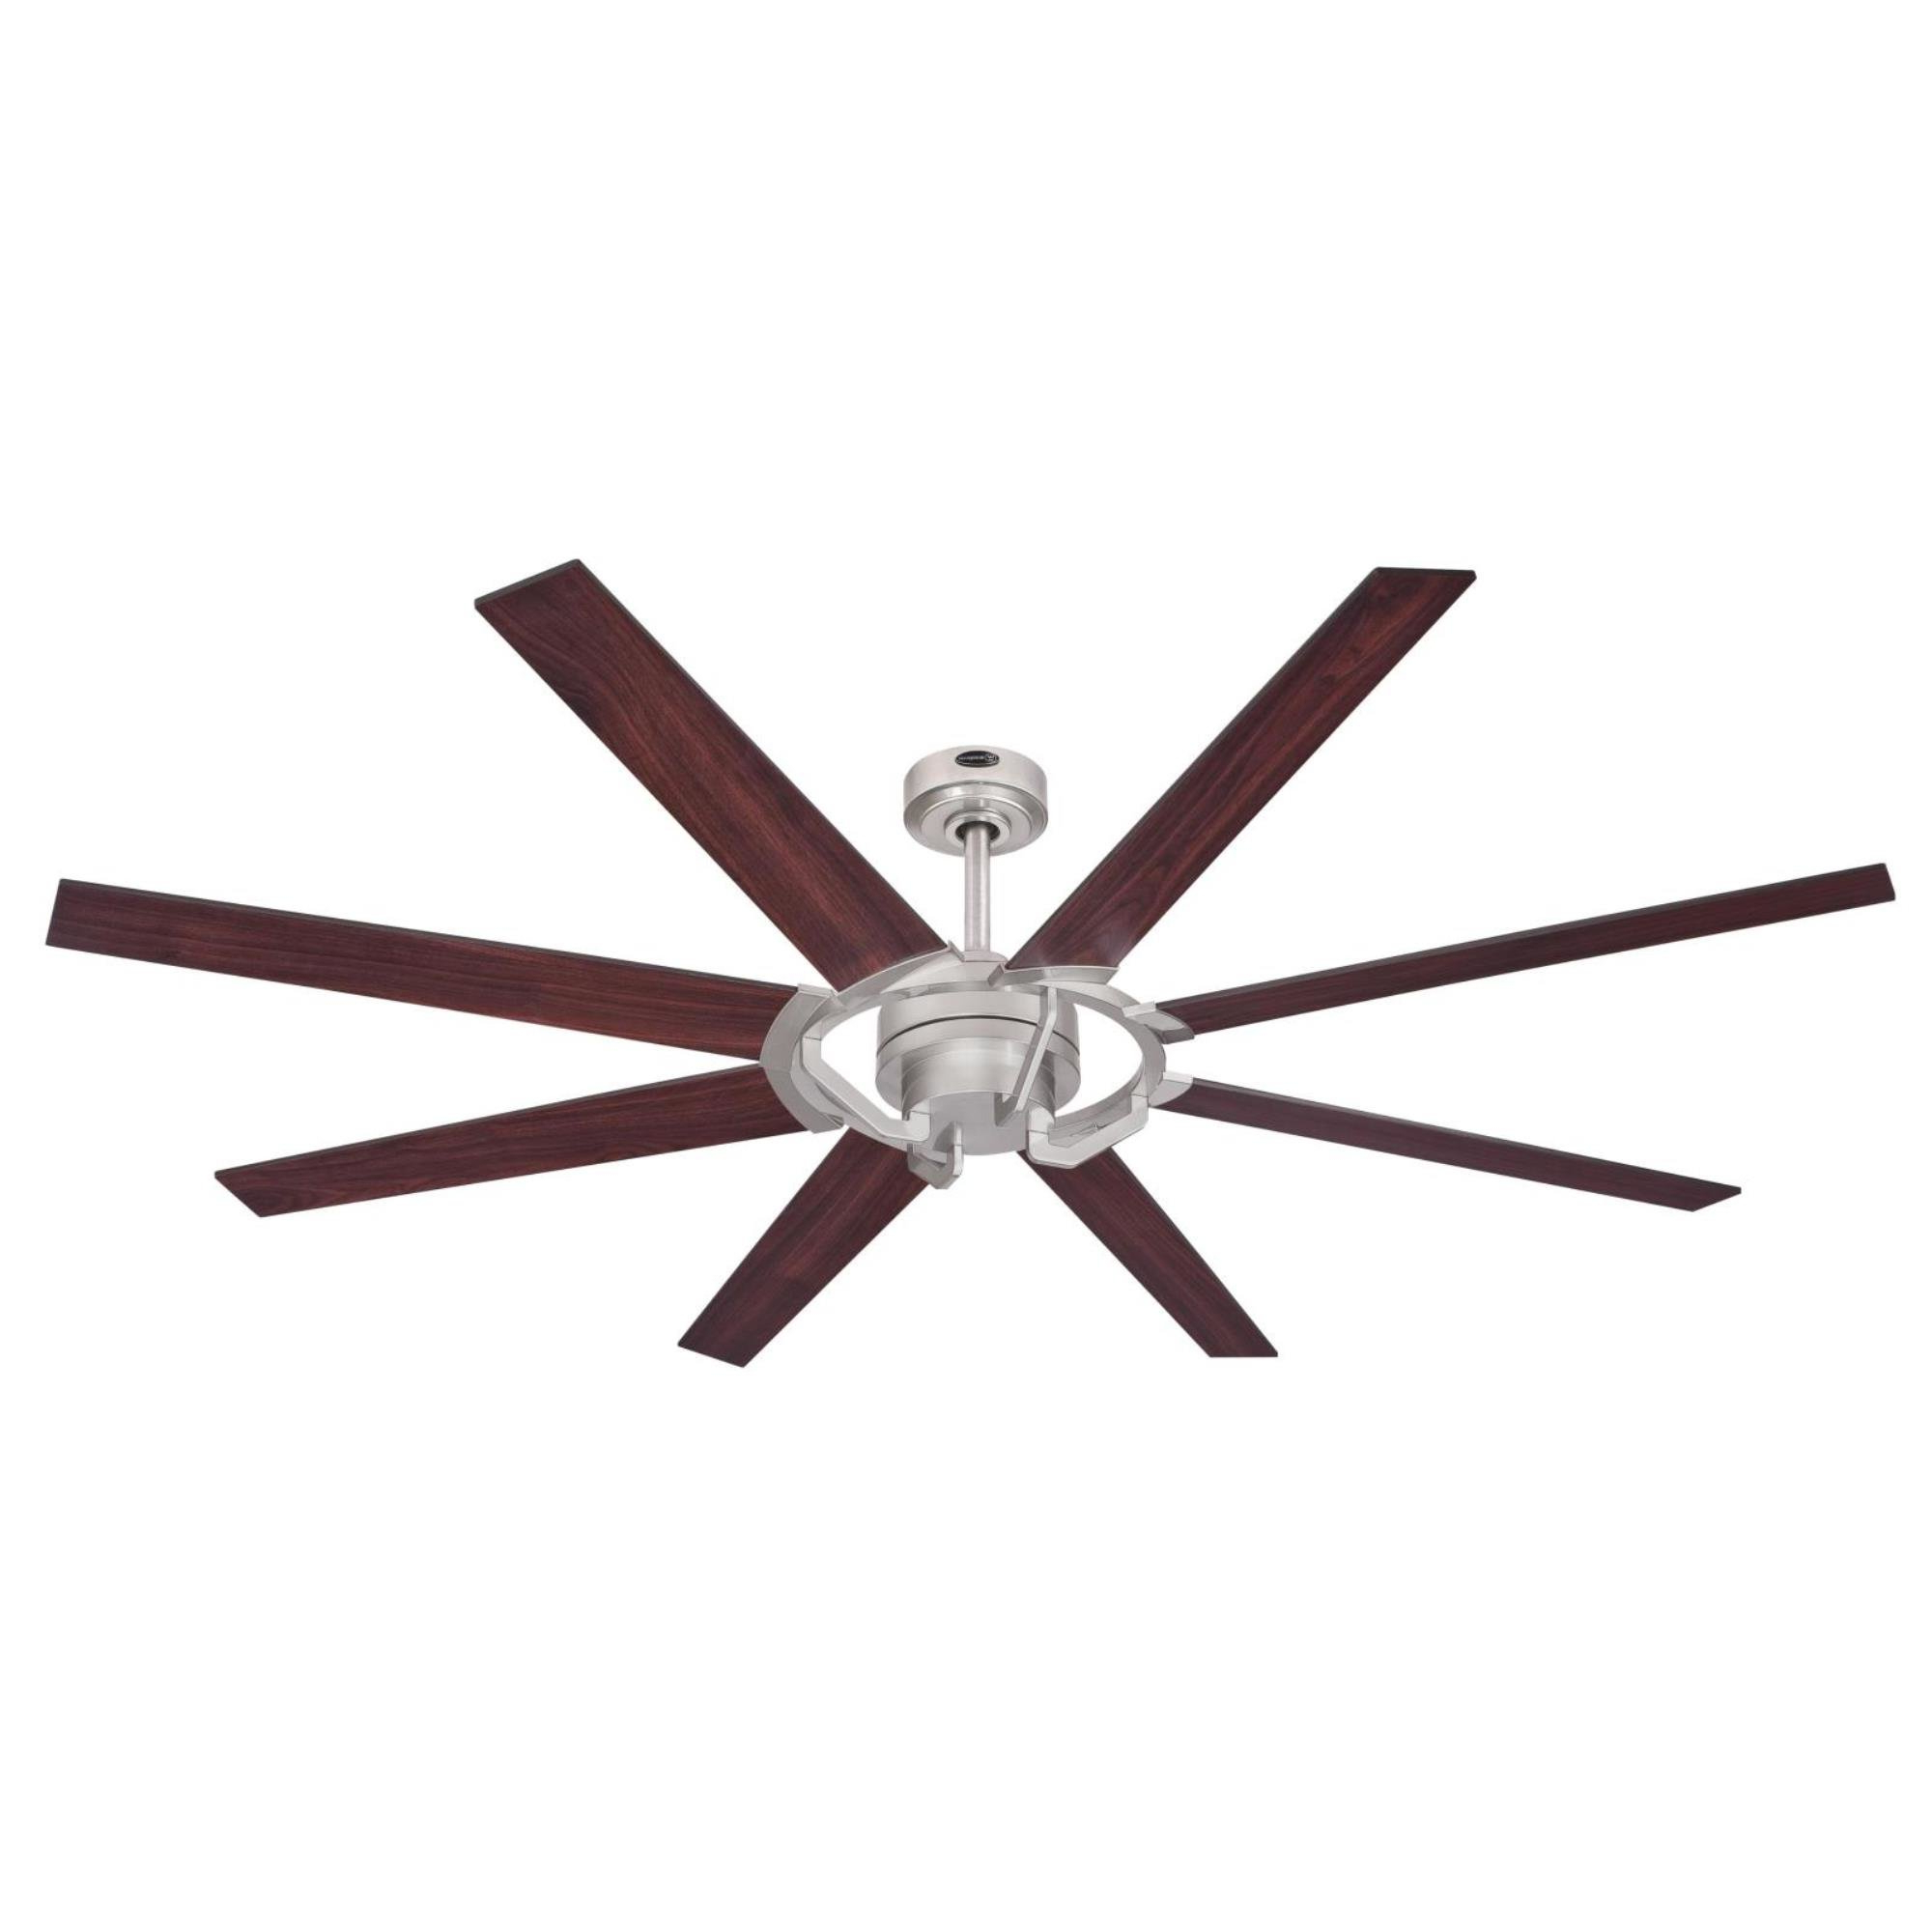 "Cillian 6 Blade Ceiling Fans Throughout Preferred 68"" Ennis 8 Blade Ceiling Fan With Remote (View 10 of 20)"